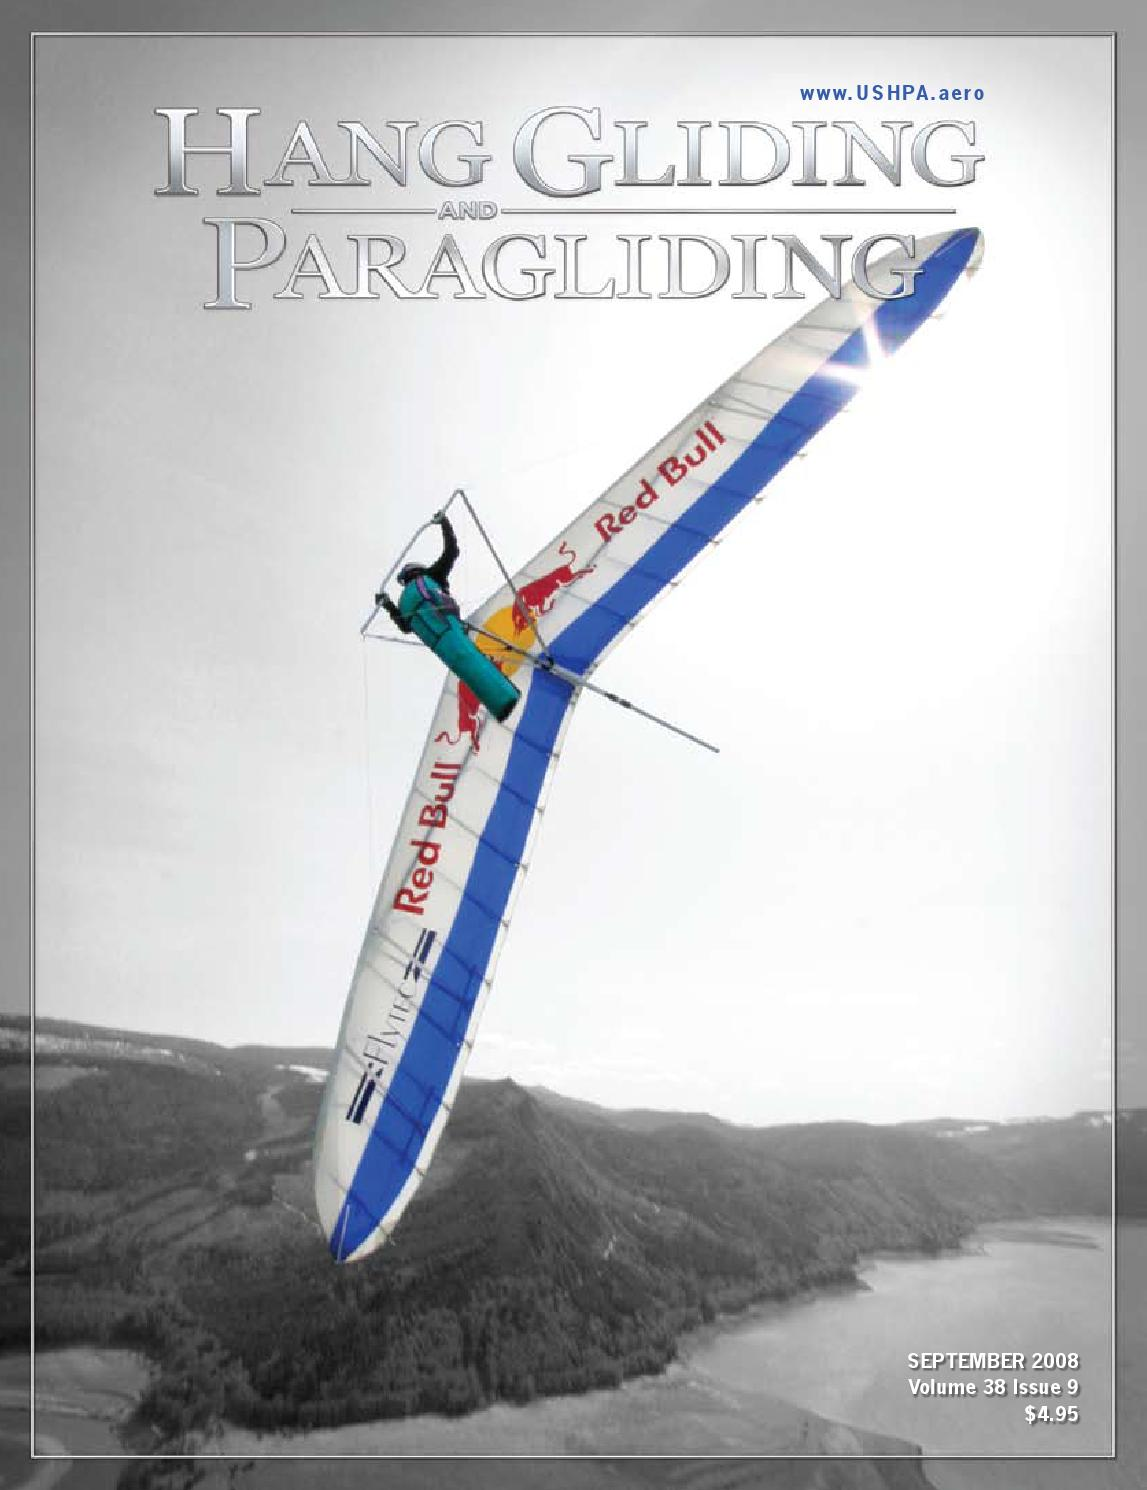 6226d1462ad7 Hang Gliding   Paragliding Vol38 Iss09 Sep 2008 by US Hang Gliding    Paragliding Association - issuu